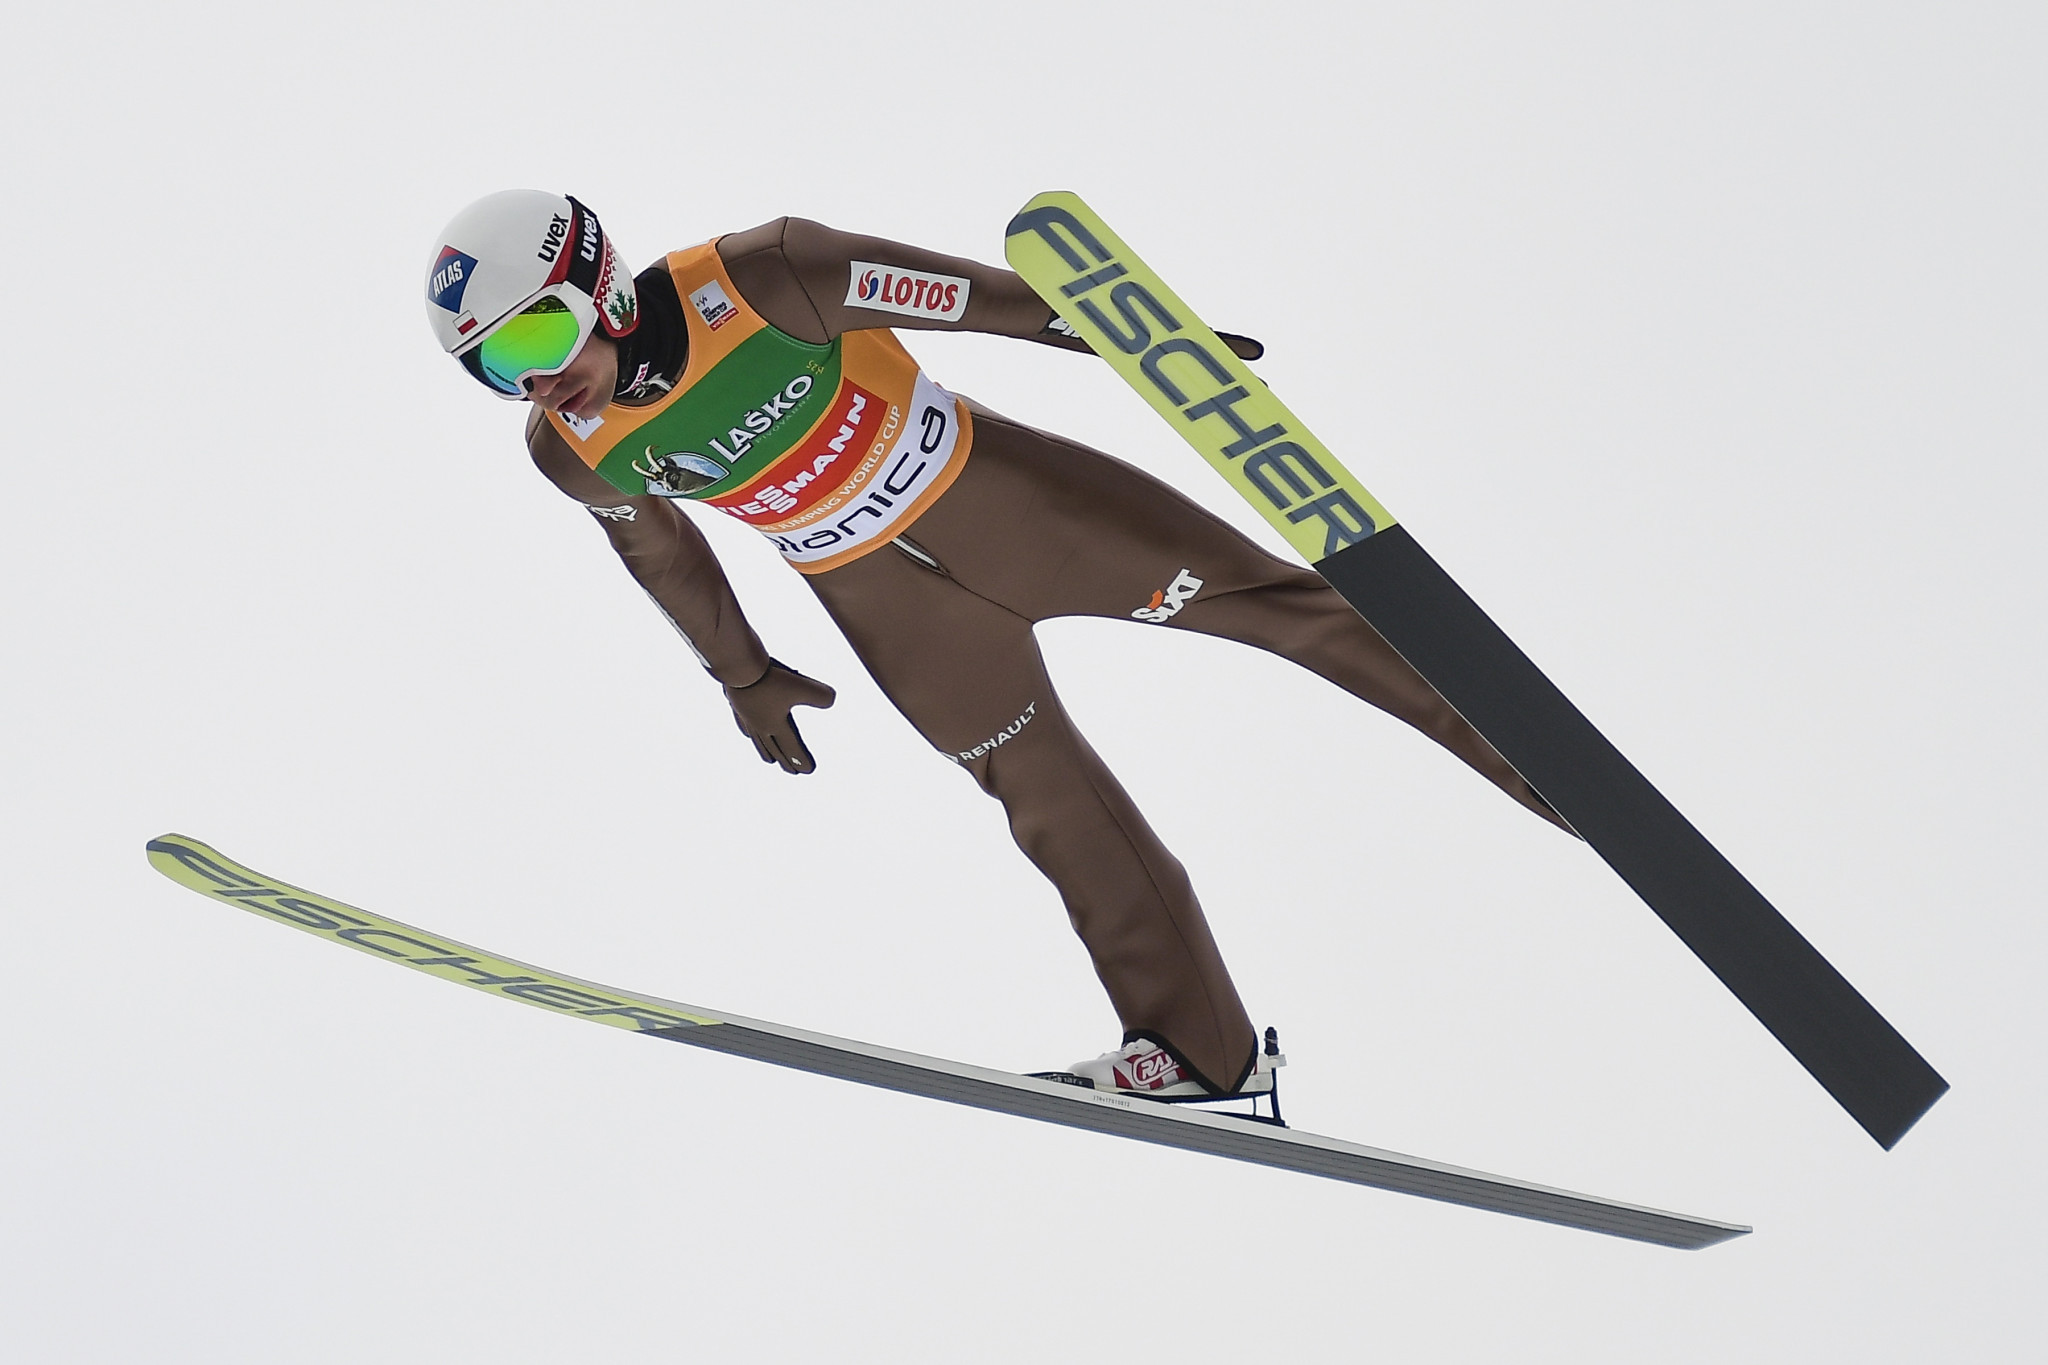 Poland's Kamil Stoch, the winner in Wisla last year, finished fourth ©Getty Images